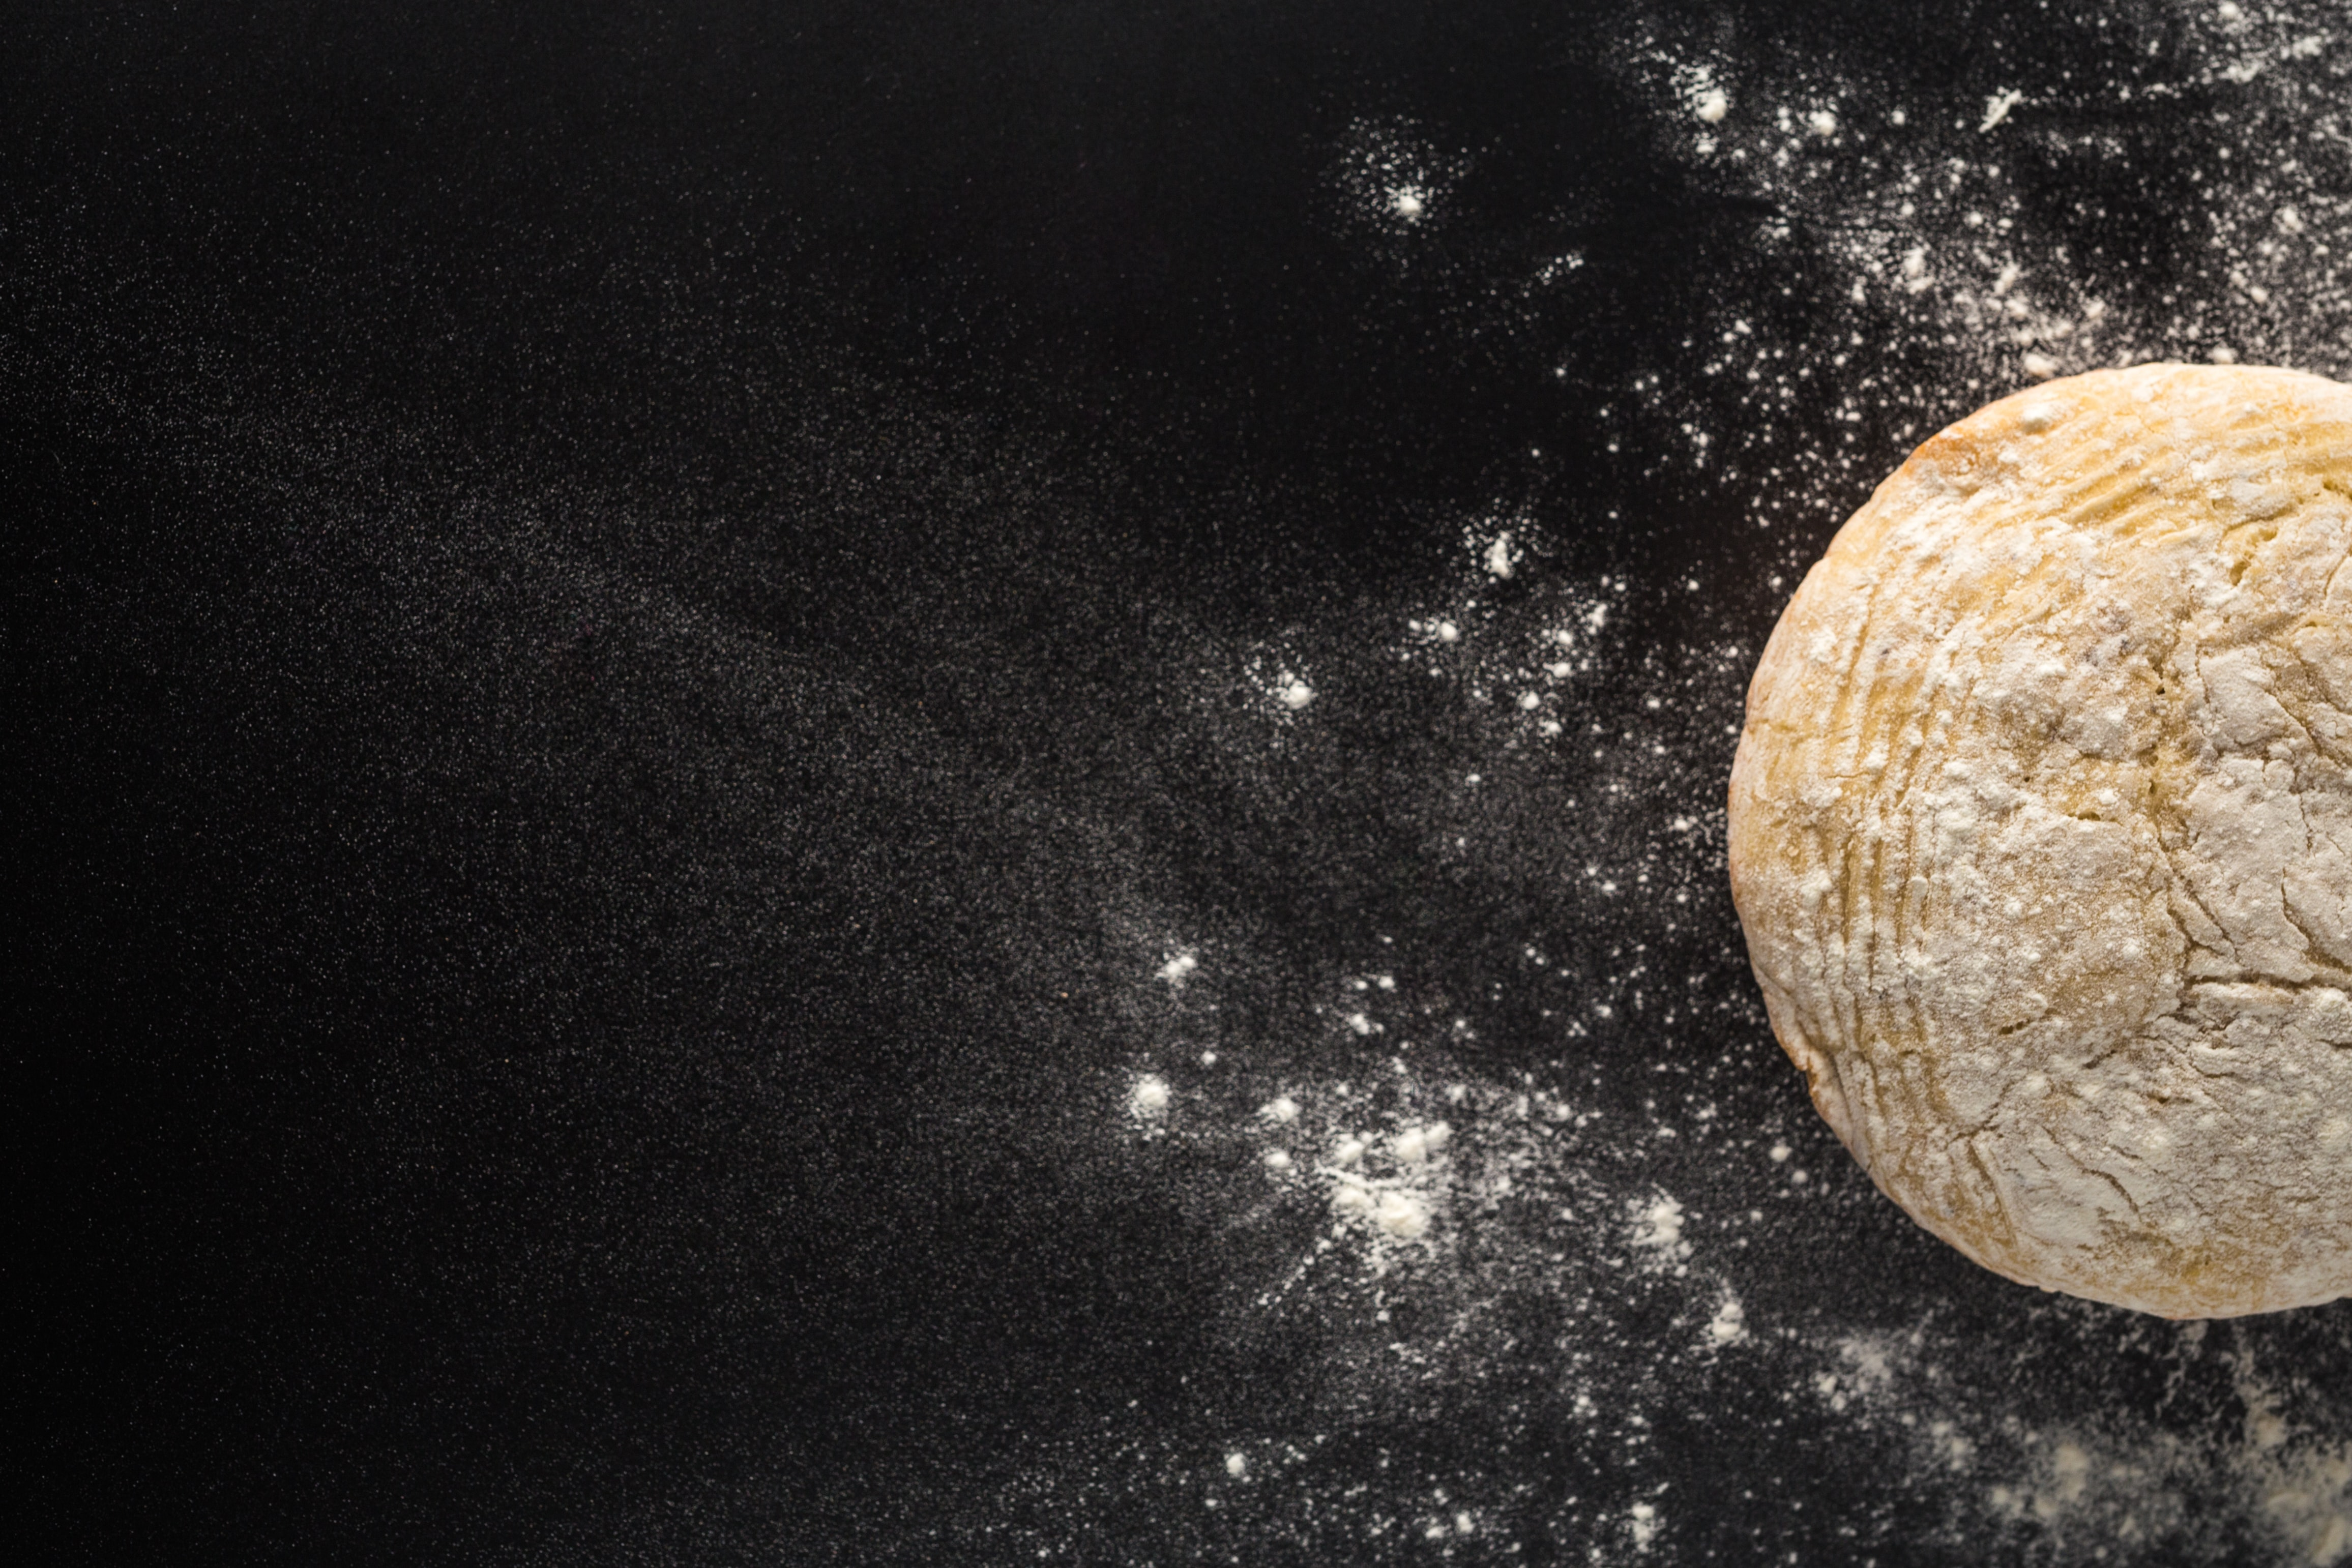 Uncooked bread loaf on black background surrounded by a sprinkle of flour